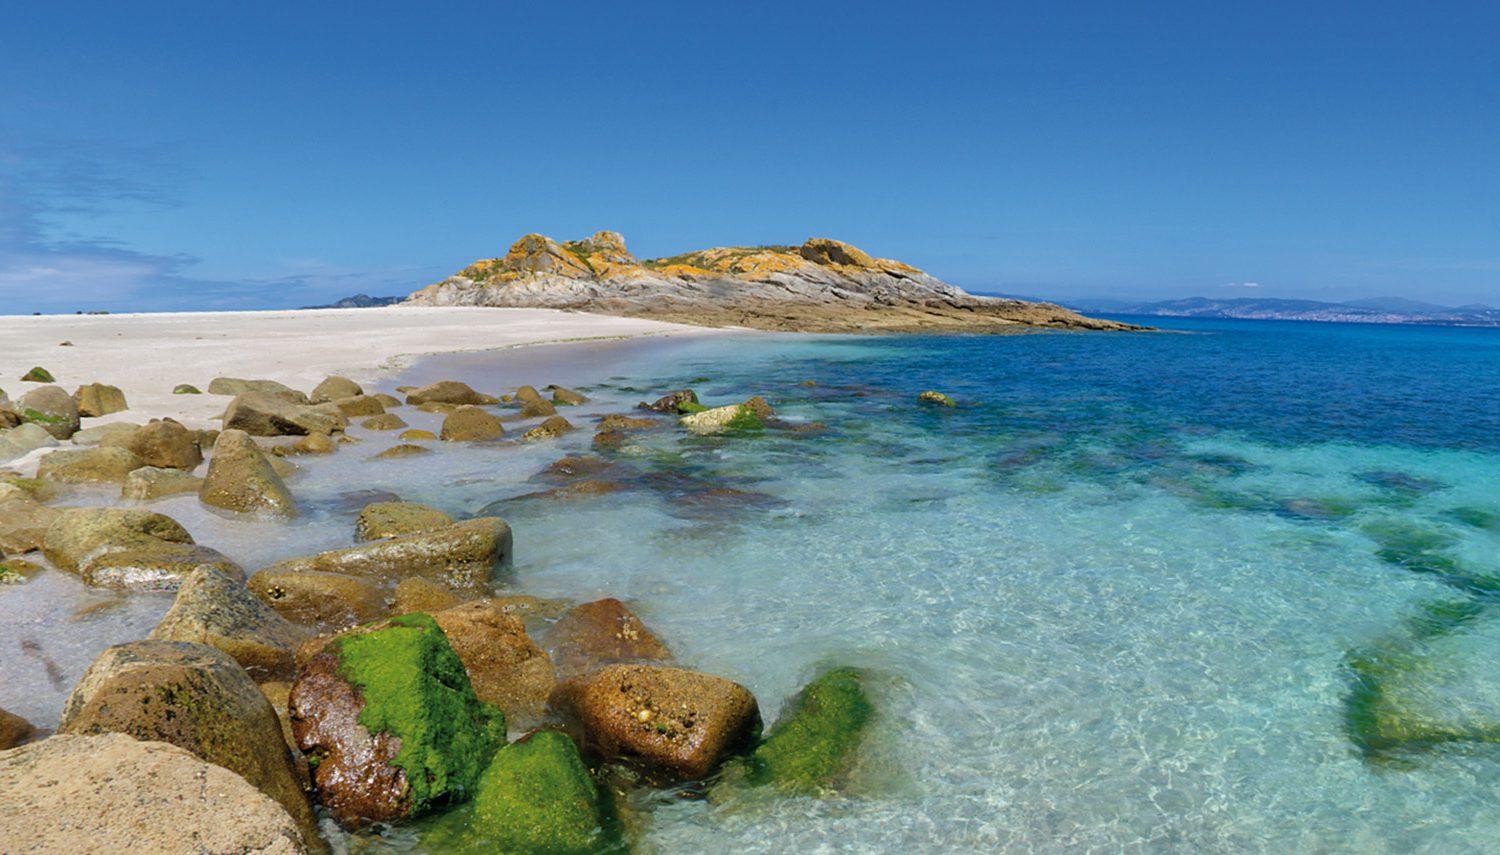 islas-cies-playa-mar